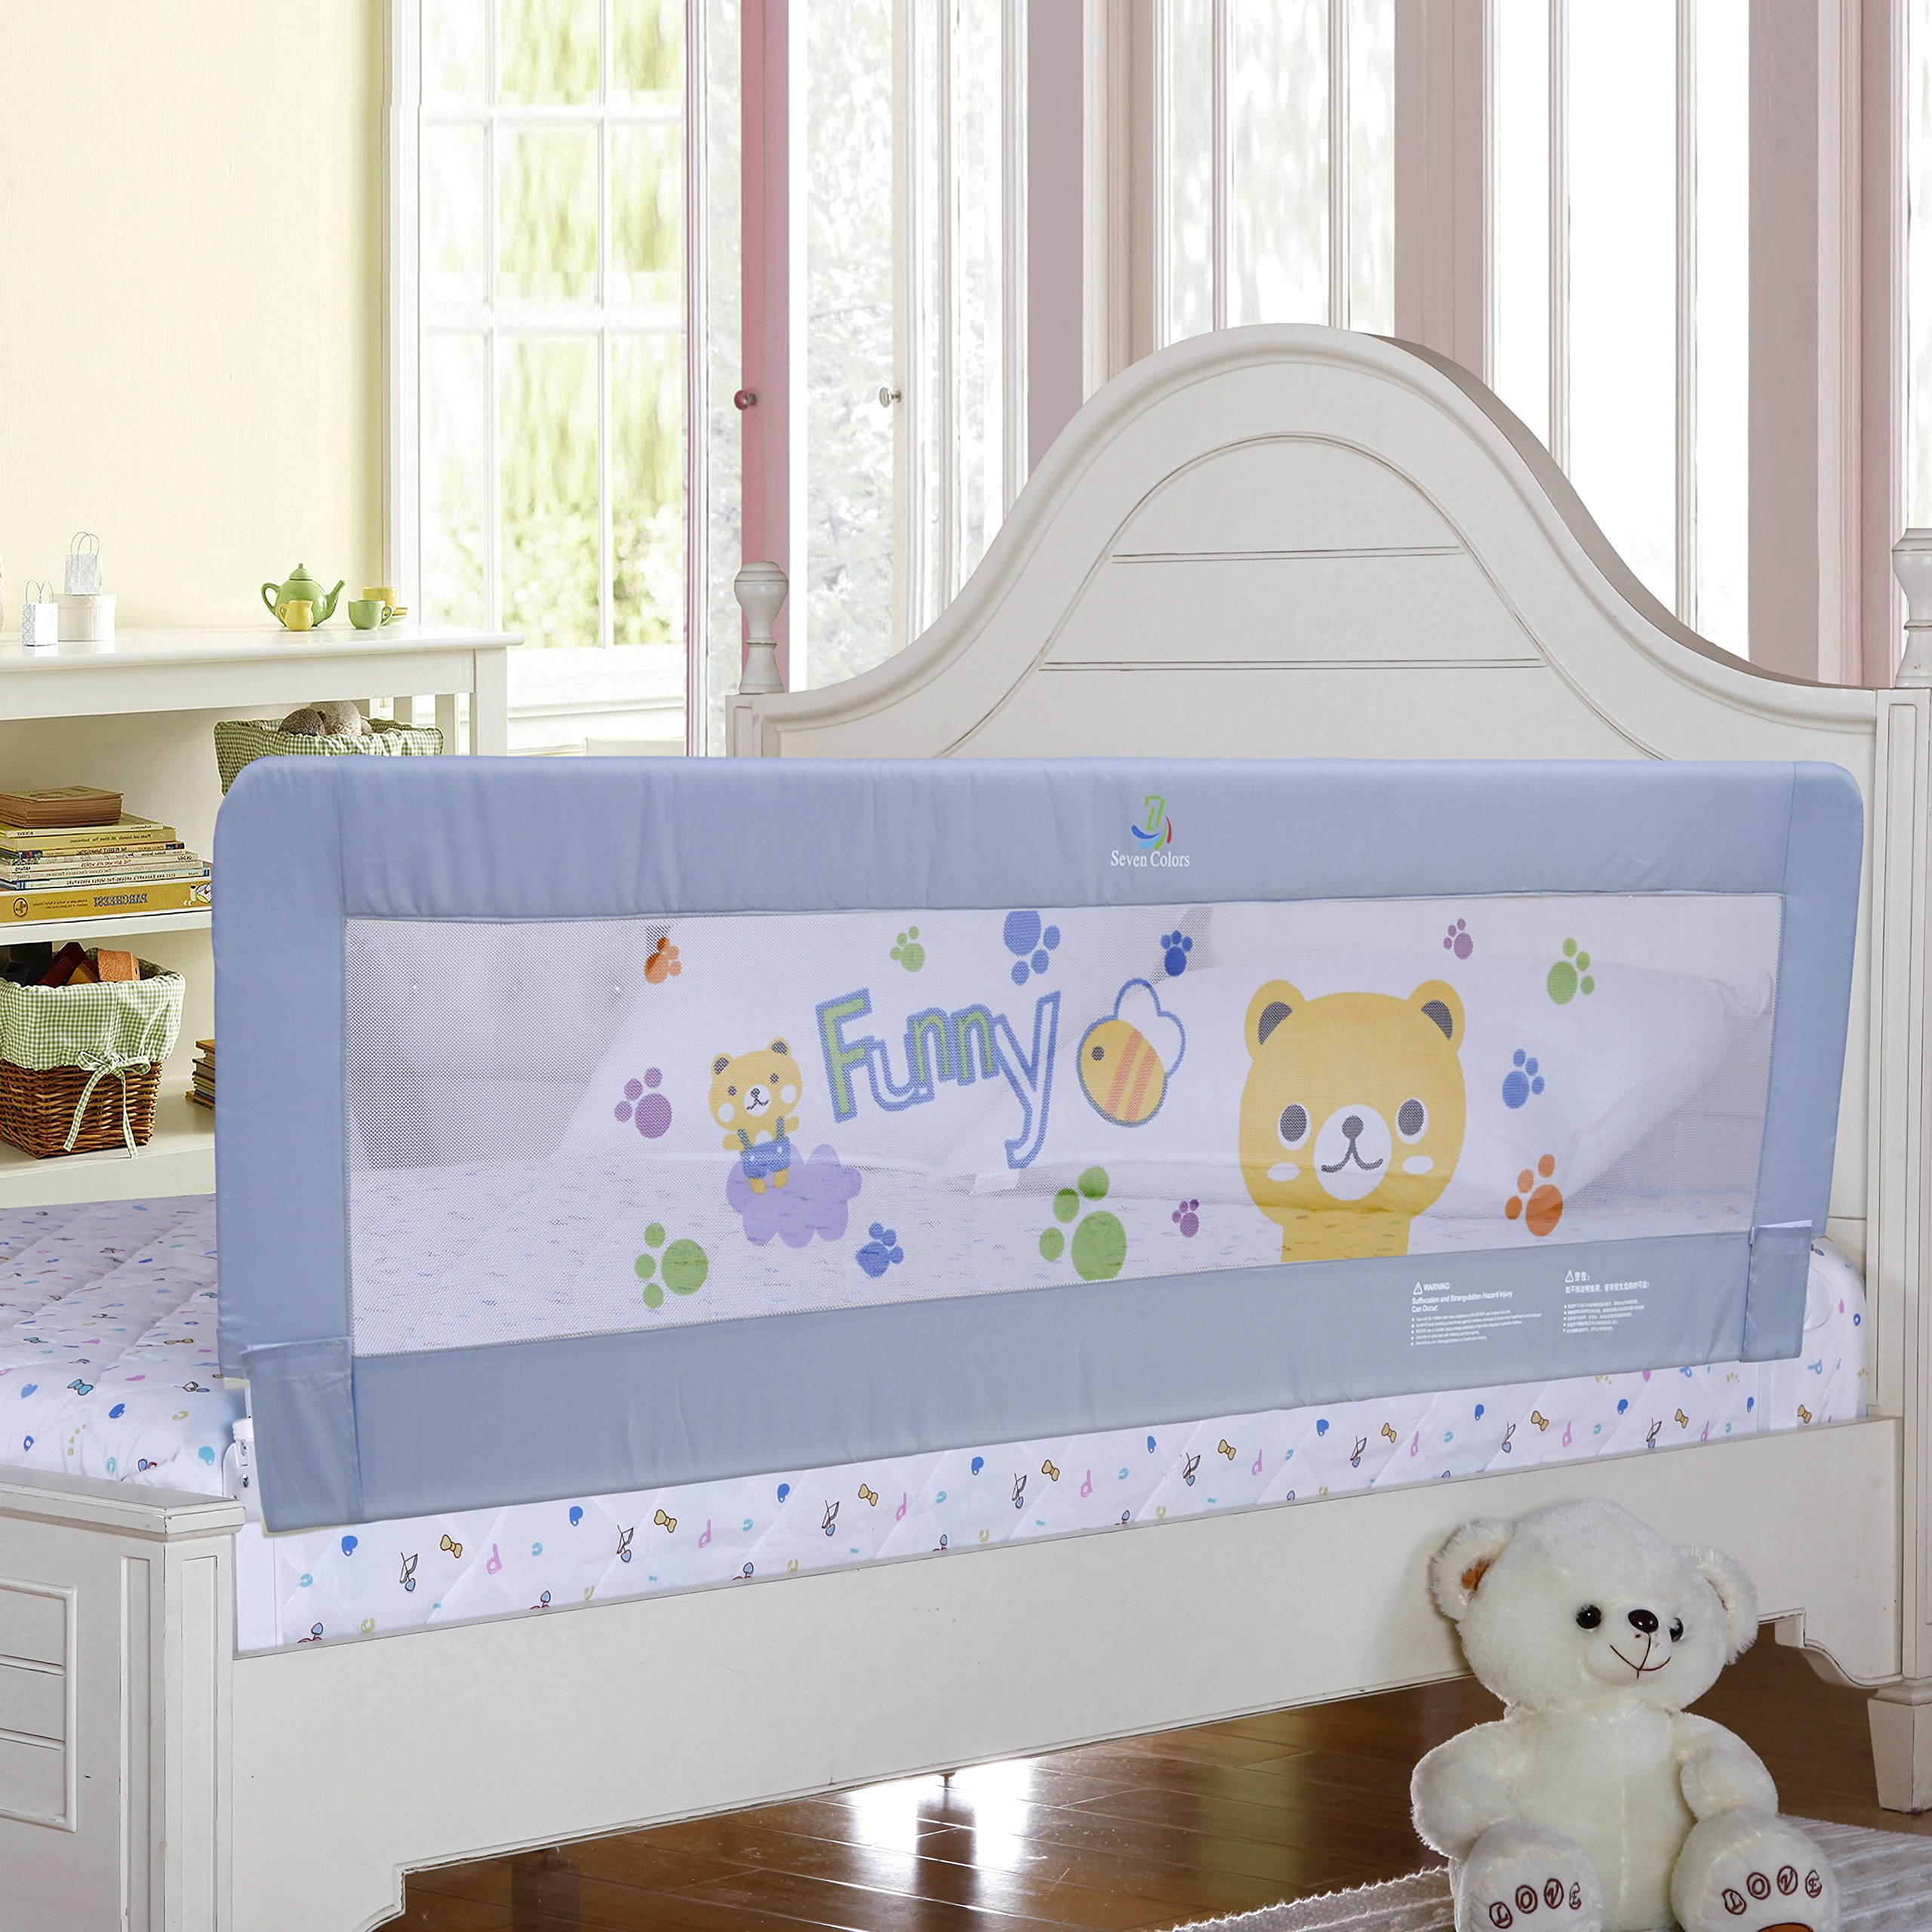 Gray Color Baby Bed Rail Extra Long Bed Guard Safety Bedrail Stop Falling for Kids Fits Toddler to Queen & King Size Bed, All Size (46'' inches)